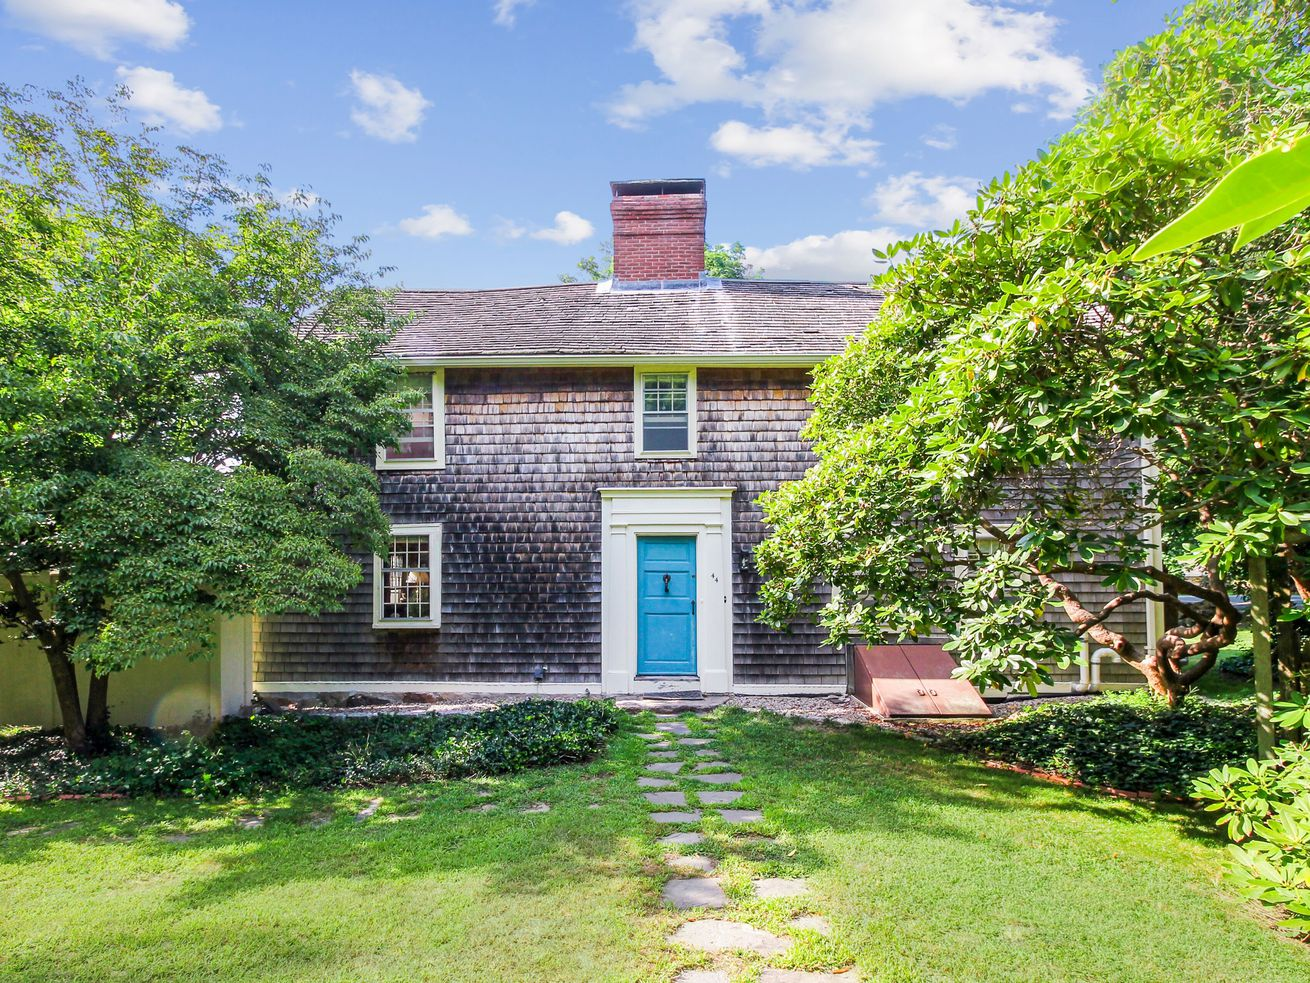 A rare home from 1682 sits on green grassy surrounded by bright green trees. The shingle-style home features a center brick chimney, white-framed windows, and a bright blue door trimmed in white.